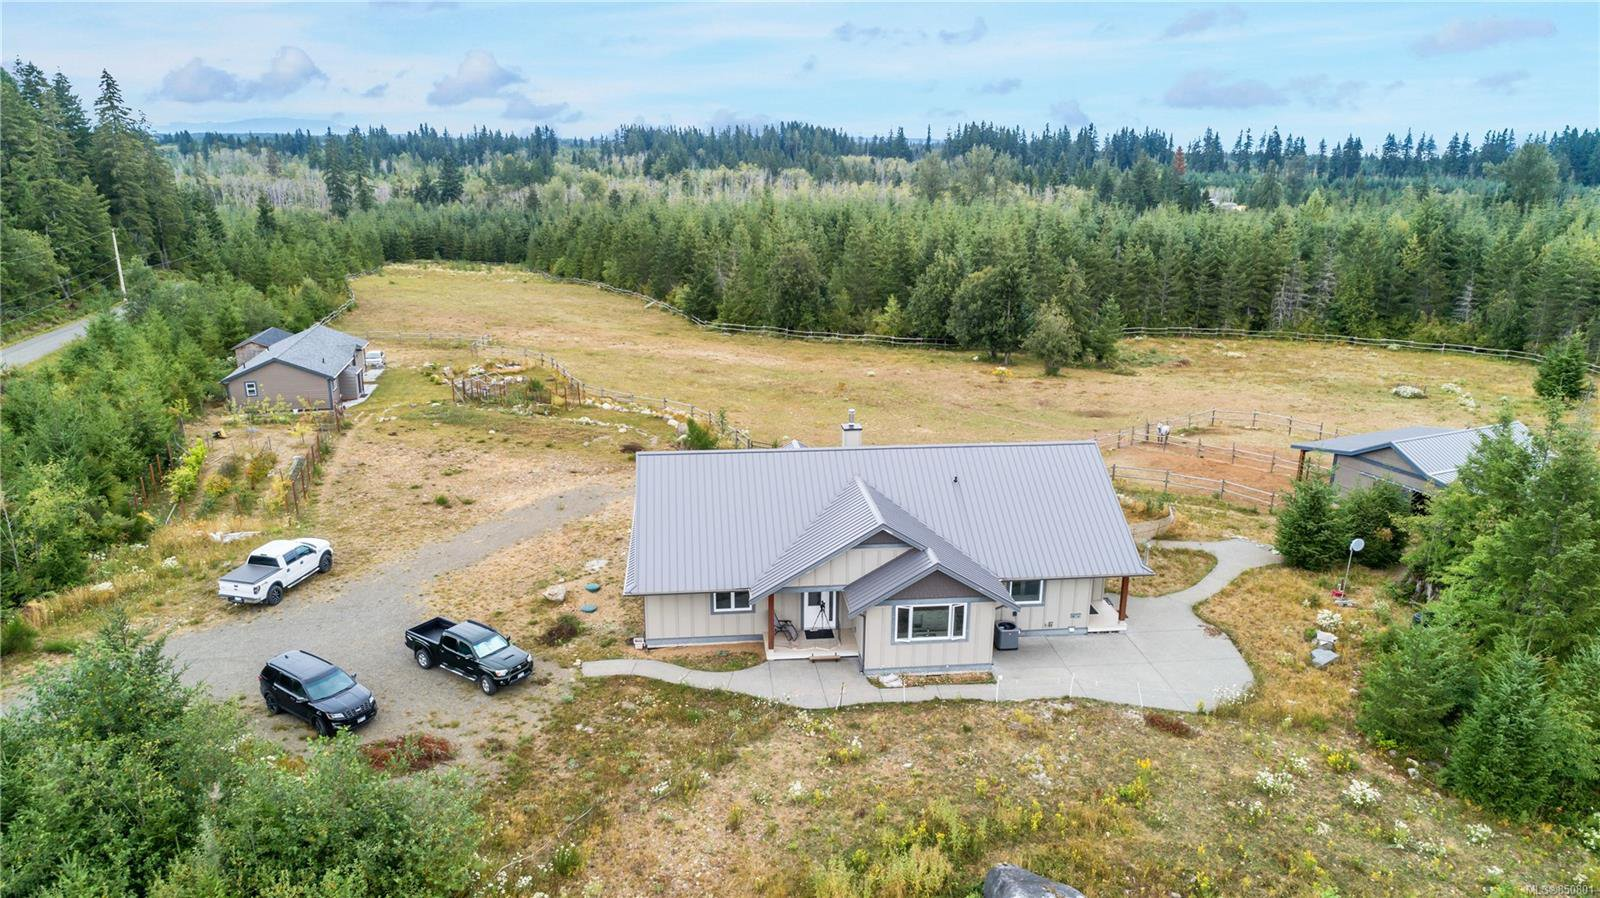 Main Photo: 4185 Chantrelle Way in : CR Campbell River South Single Family Detached for sale (Campbell River)  : MLS®# 850801